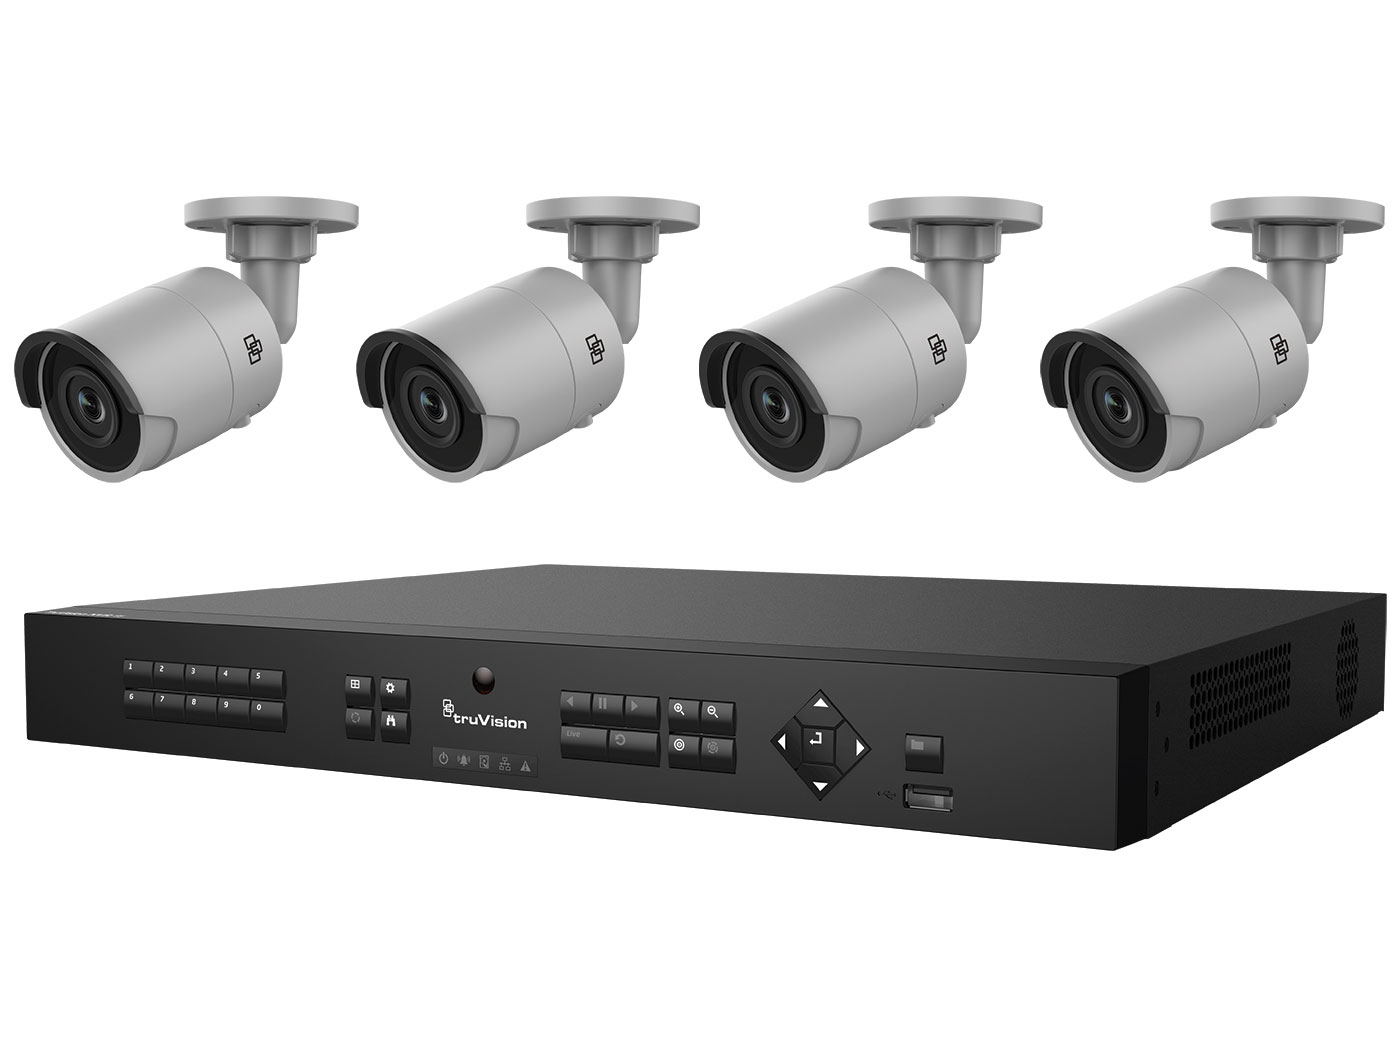 TVN-1108-KB1 INTERLOGIX HD H.265 PLUG-AND-PLAY POE SURVEILLANCE BUNDLE CONTAINS 1- 8-CHANNEL REAL-TIME 8-POE PORT HD NVR WITH 2TB AND 4 INDOOR-OUTDOOR HD 3 MPXL IR BULLET CAMERAS. CONTENTS: 1 x TVN-1108S-2T 4 x TVB-5501 4mm 3Mpx bullet H.265 ************************* SPECIAL ORDER ITEM NO RETURNS OR SUBJECT TO RESTOCK FEE *************************